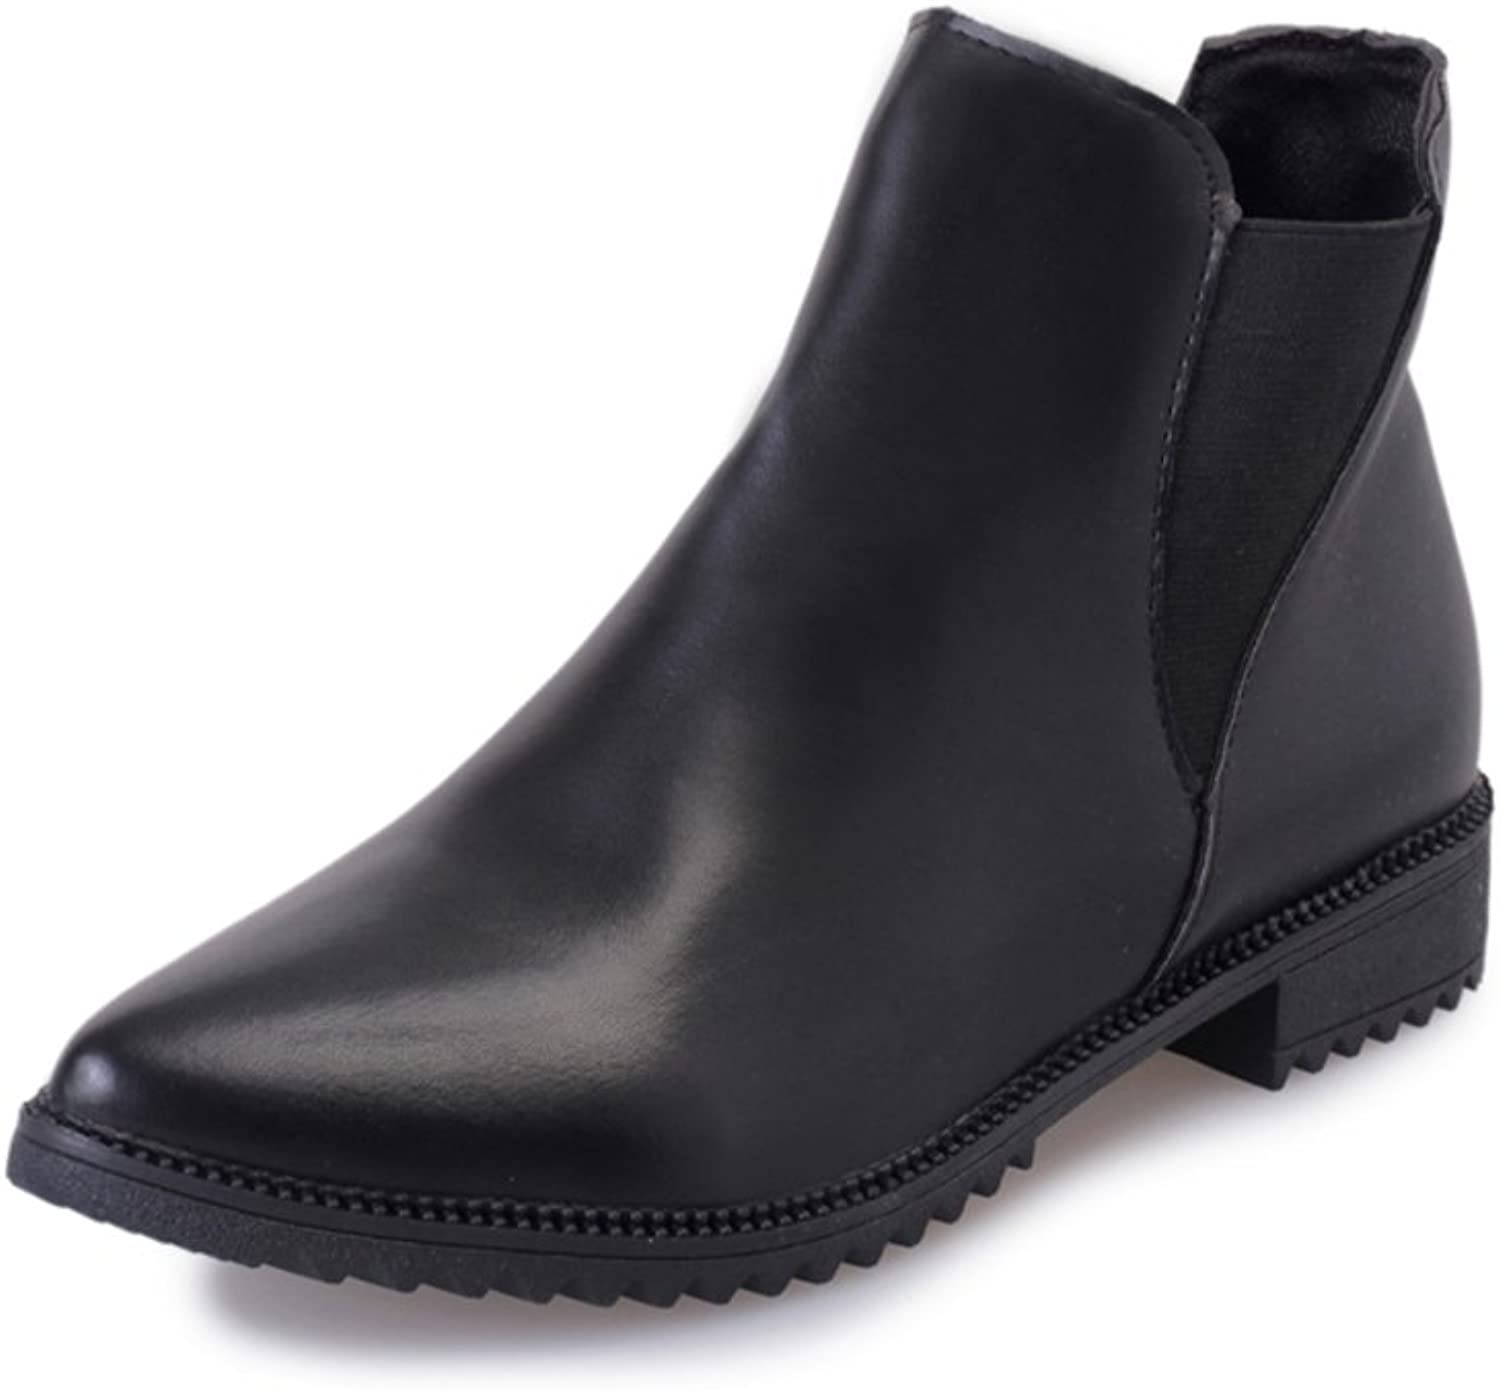 RHFDVGDS pointy boots Martin England wind boots Elastic simple nude in autumn and winter boots Joker low ladies boot